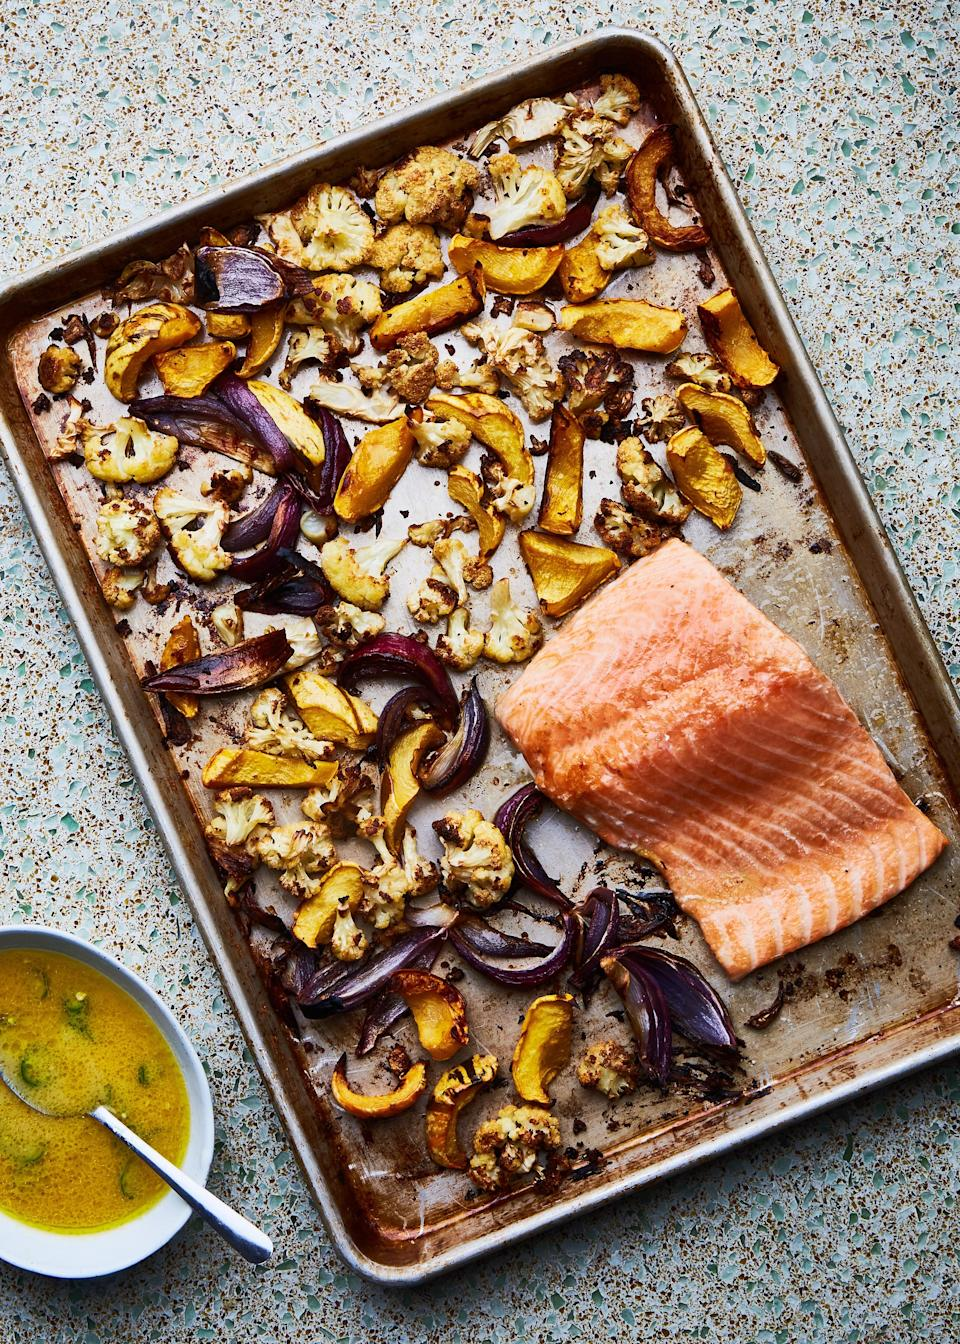 "Spiking fresh orange and lime juices with a shot of rice vinegar gives the sweet citrus flavor an edge to stand up to rich fish and earthy roasted vegetables. <a href=""https://www.bonappetit.com/recipe/sheet-pan-salmon-and-squash-with-miso-mojo?mbid=synd_yahoo_rss"" rel=""nofollow noopener"" target=""_blank"" data-ylk=""slk:See recipe."" class=""link rapid-noclick-resp"">See recipe.</a>"